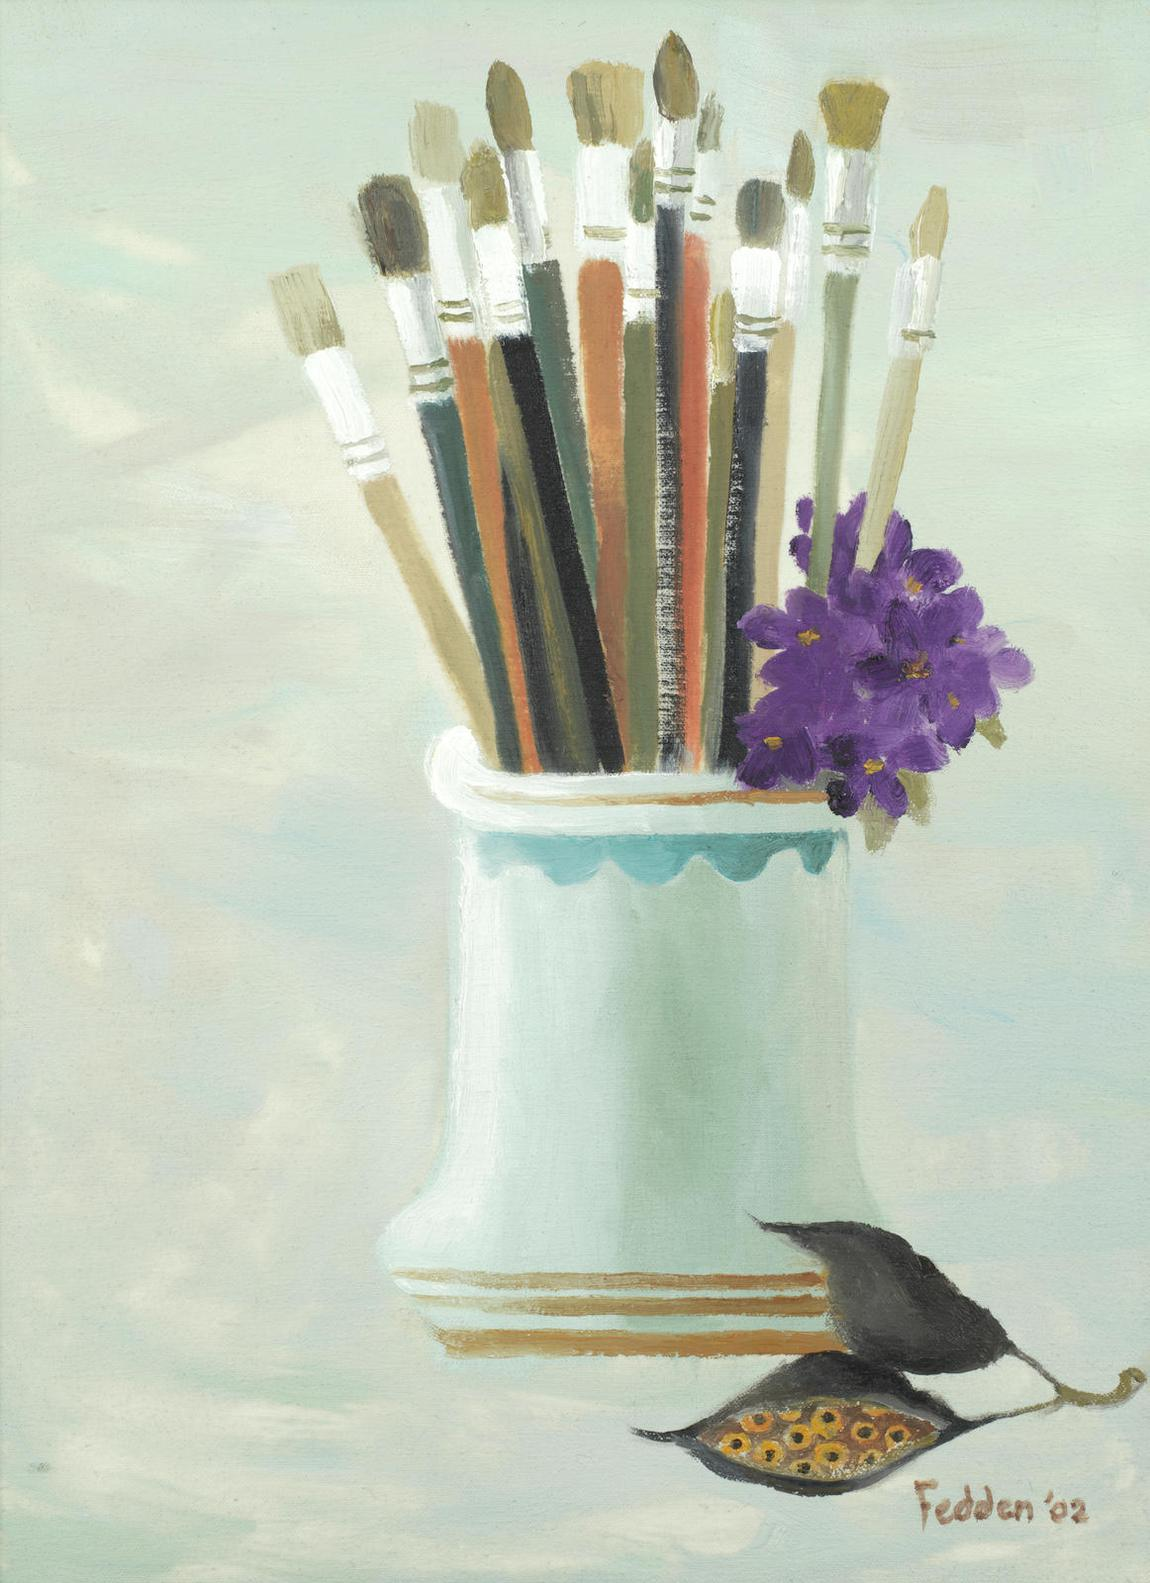 Mary Fedden - My New Brushes-2002